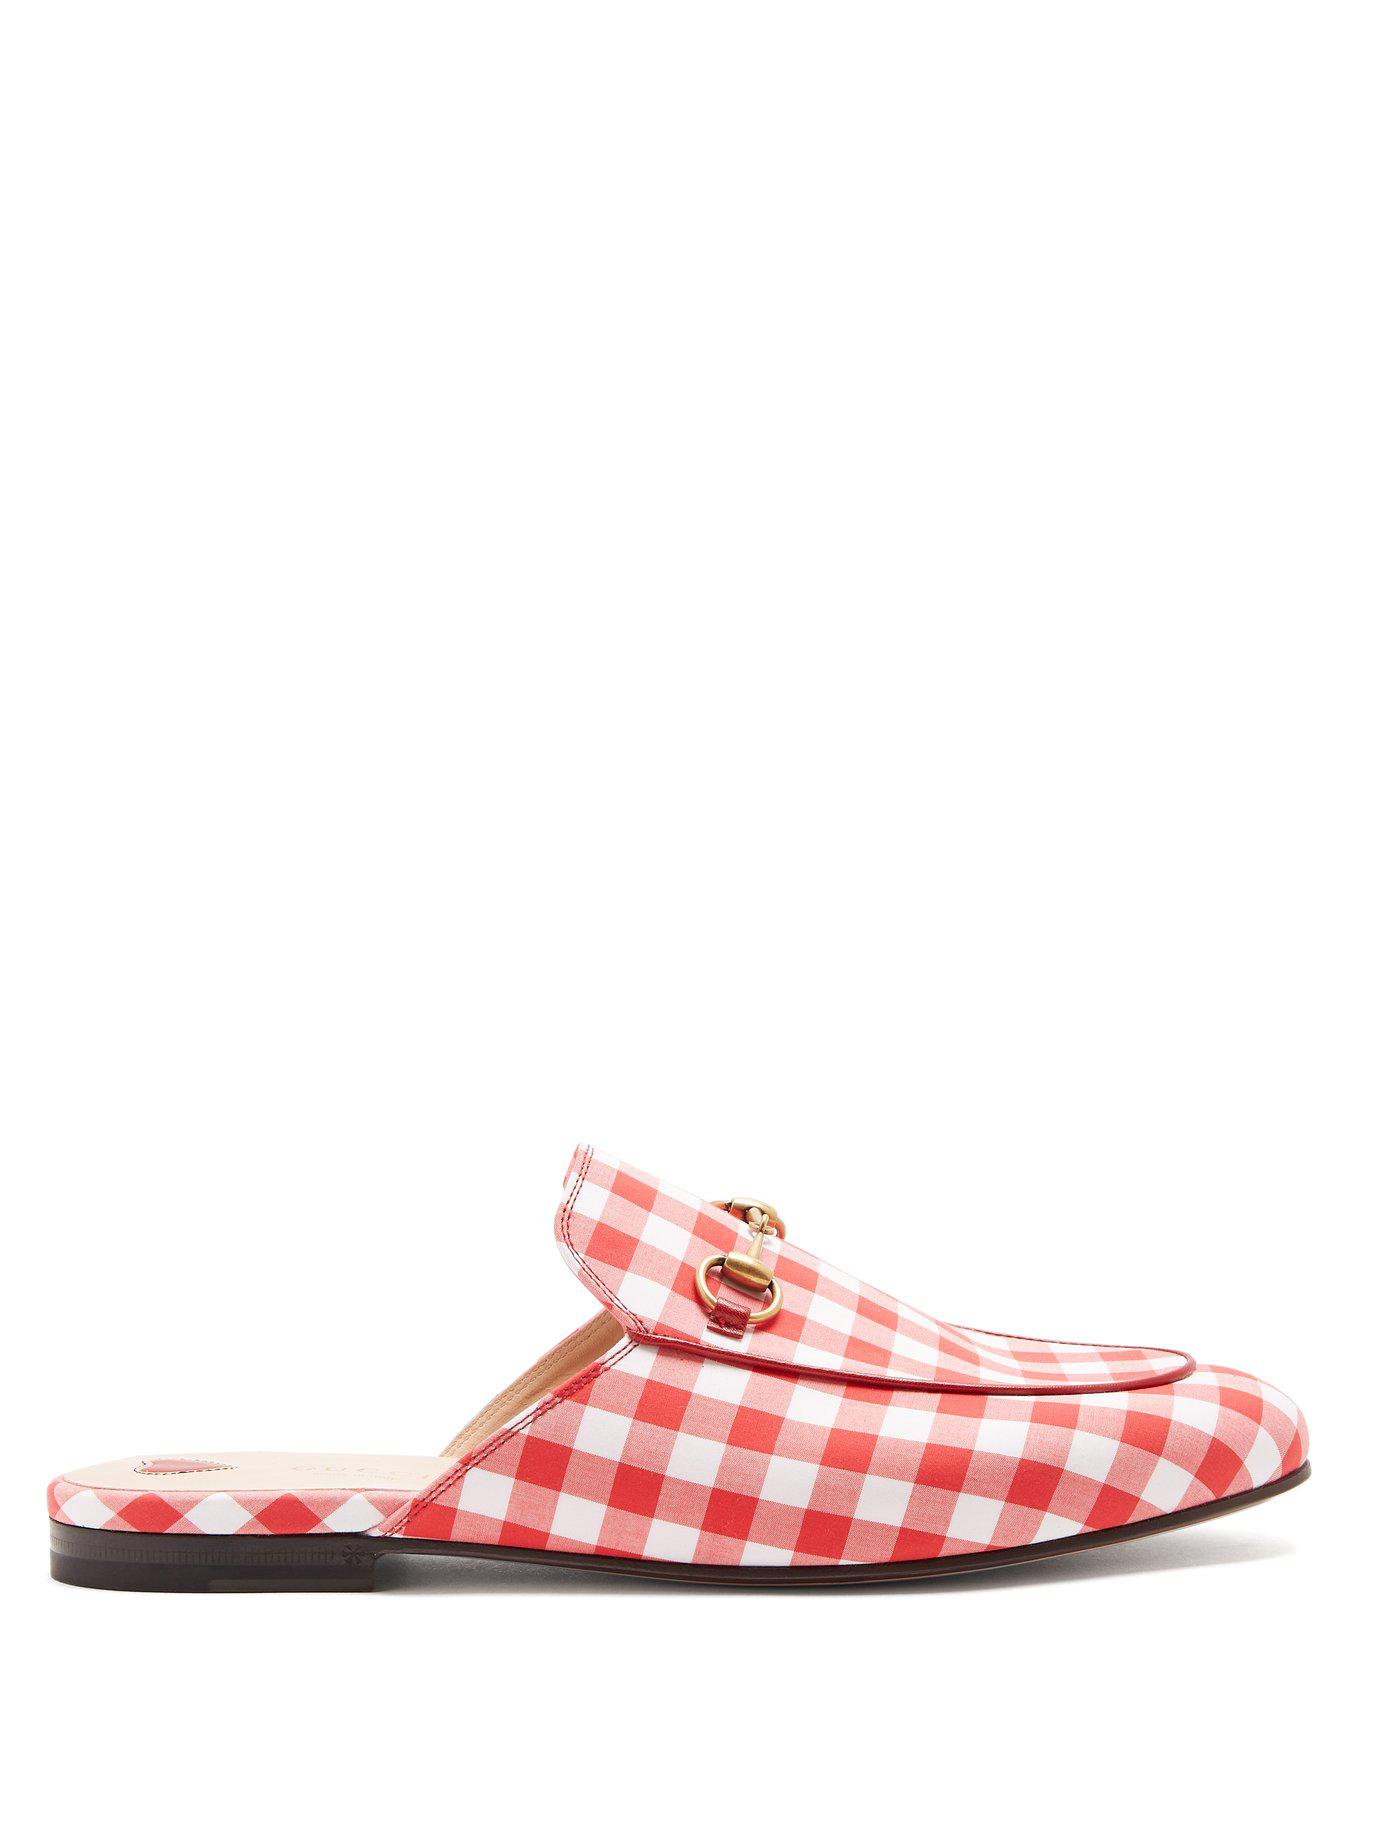 3c40b0d2e09 Gucci. Women s Princetown Gingham Loafers